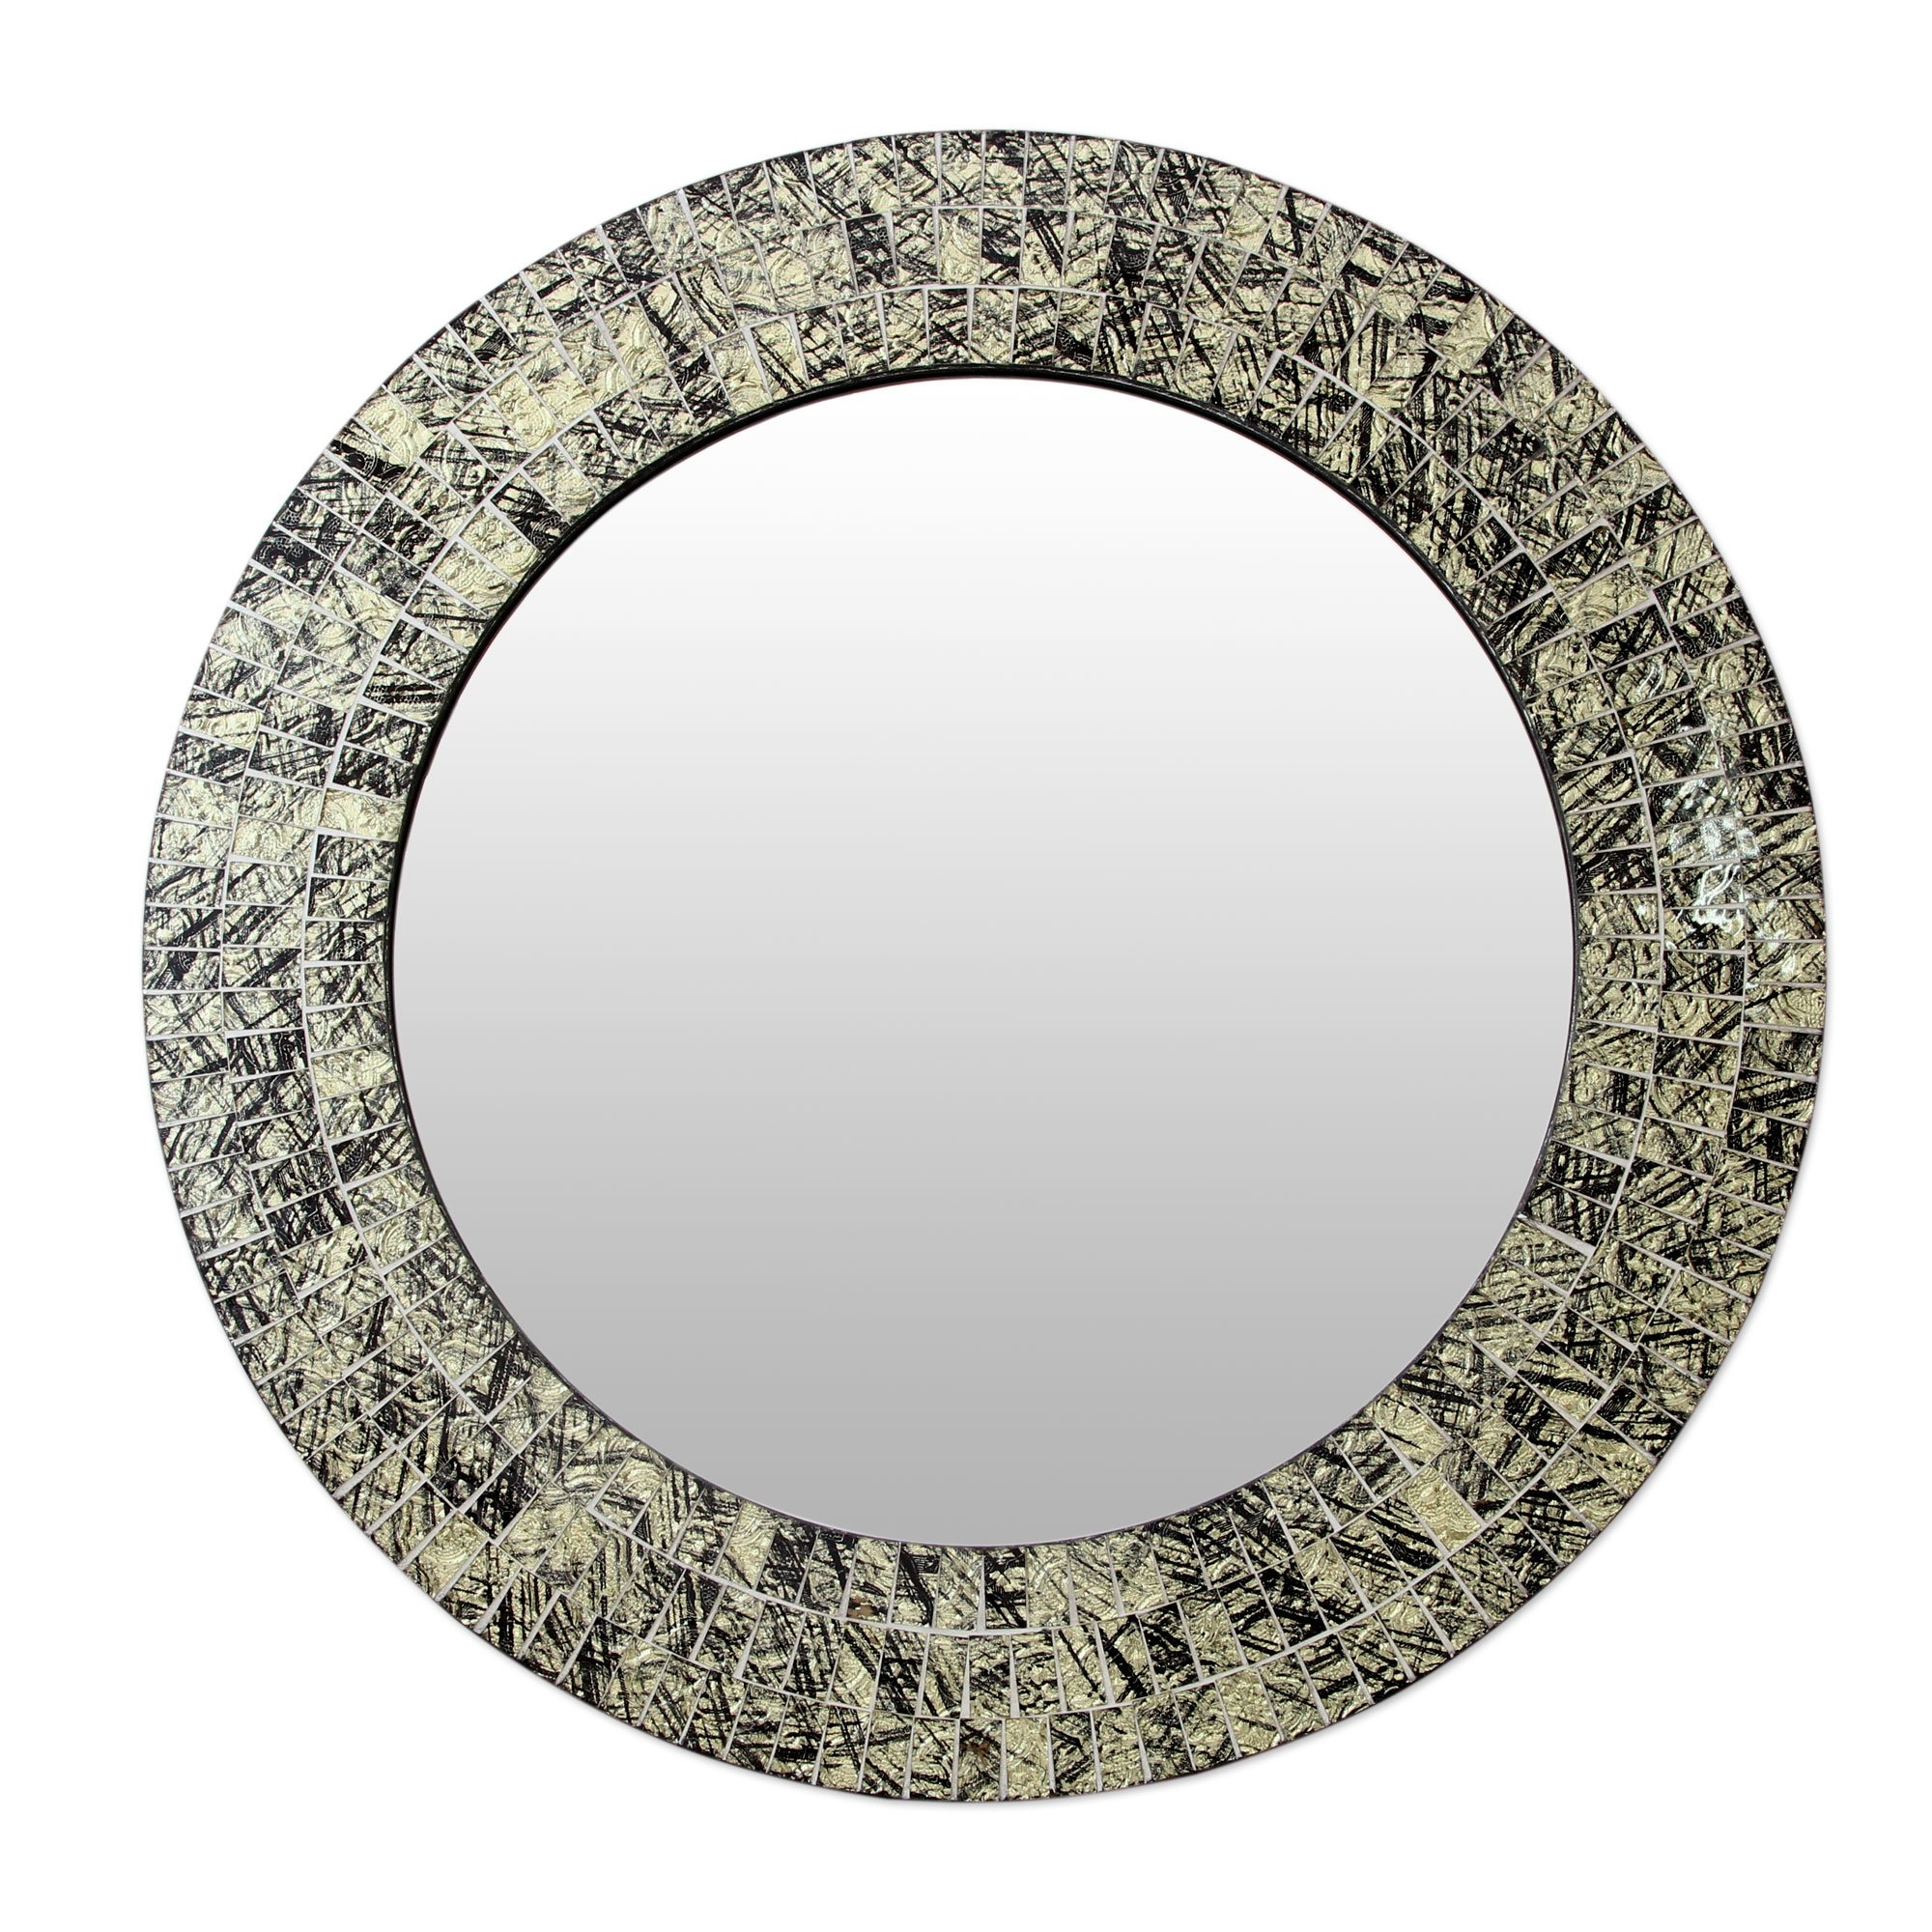 Novica Golden Moon Glass Mosaic Round Wall Mirror Wayfair Inside Round Mosaic Wall Mirror (Image 10 of 15)